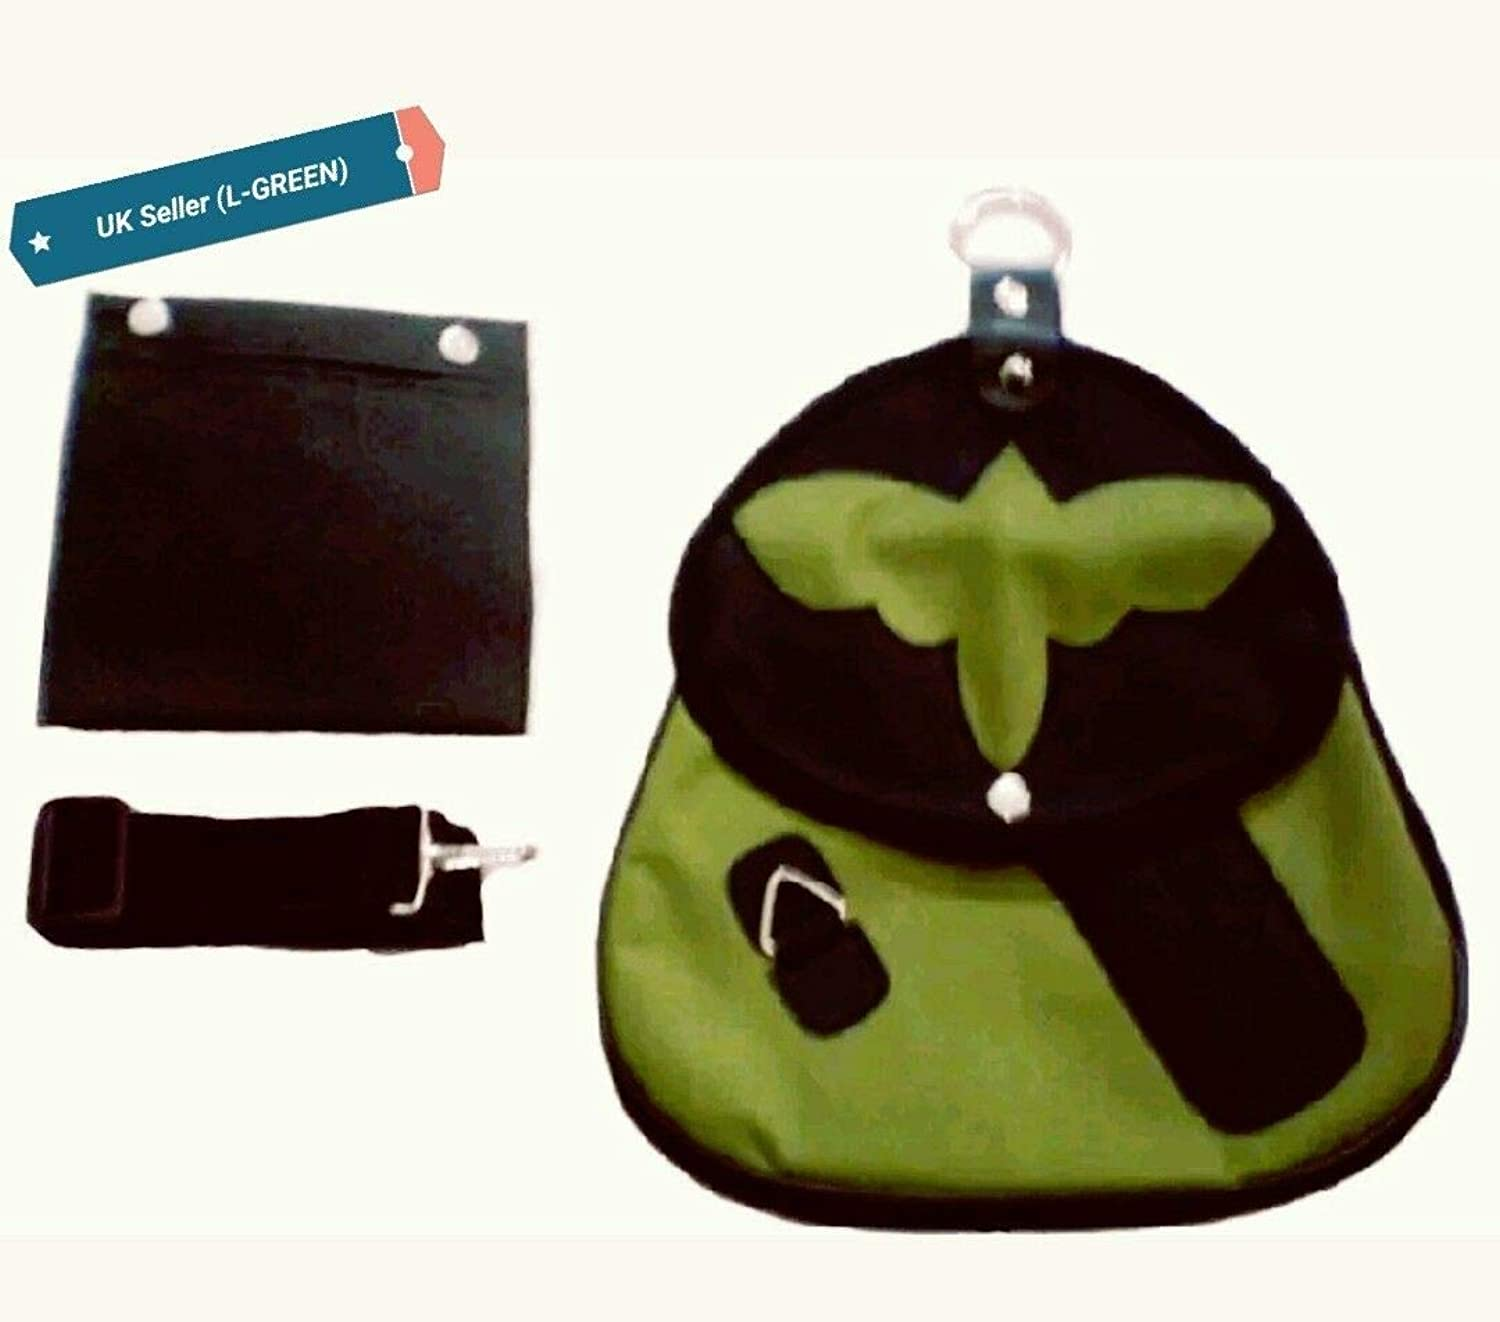 Falconry Cordura Bag, Hunting Bag with Strap & Detachable Meat Pocket, New Green